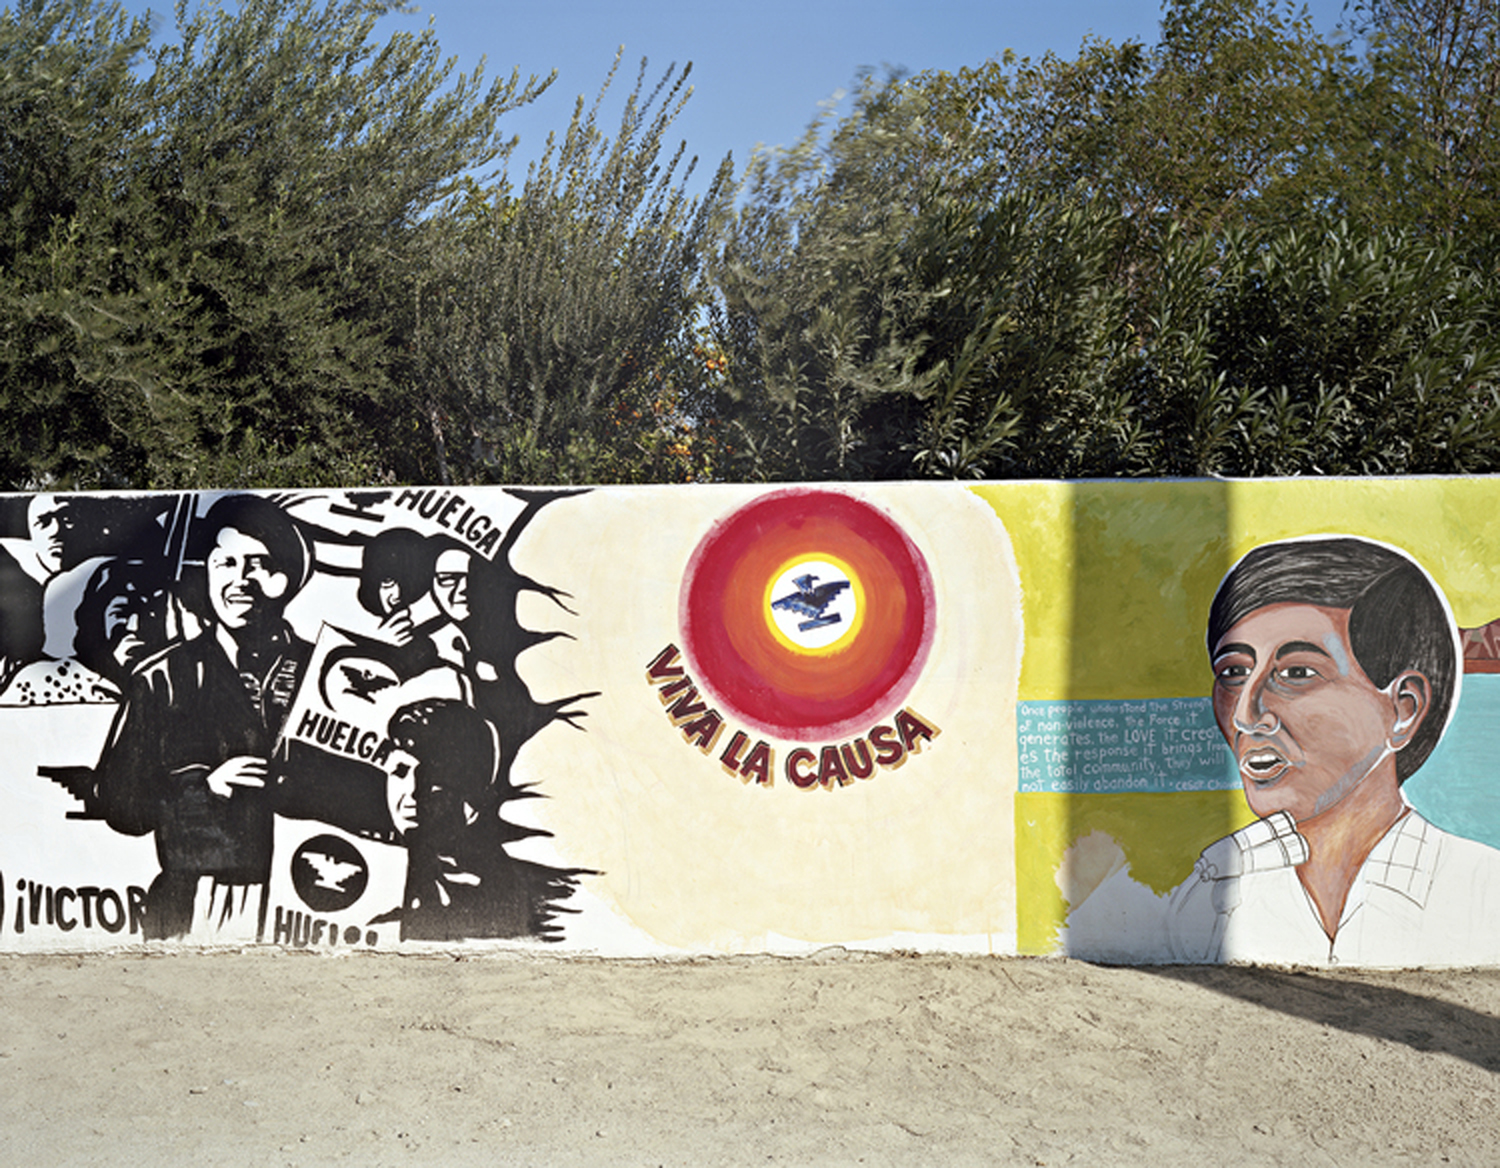 Chicano-Mexicano Historical Timeline, Coachella, CA, 2013    This section of the Shady Lane Mural Project, painted by local artists, depicts Cesar Chavez (1927-1993), an American labor leader and civil rights activist who helped found the United Farm Workers Union.  Chavez led a struggle for fairness and dignity that included marches, boycotts, and hunger strikes as non-violent means to highlight the plight of migrant agricultural workers.  His actions also focused attention on health issues and the dangers of pesticides.  A nationwide upsurge of cultural pride and political action by Latinos are a major part of the Chavez legacy.